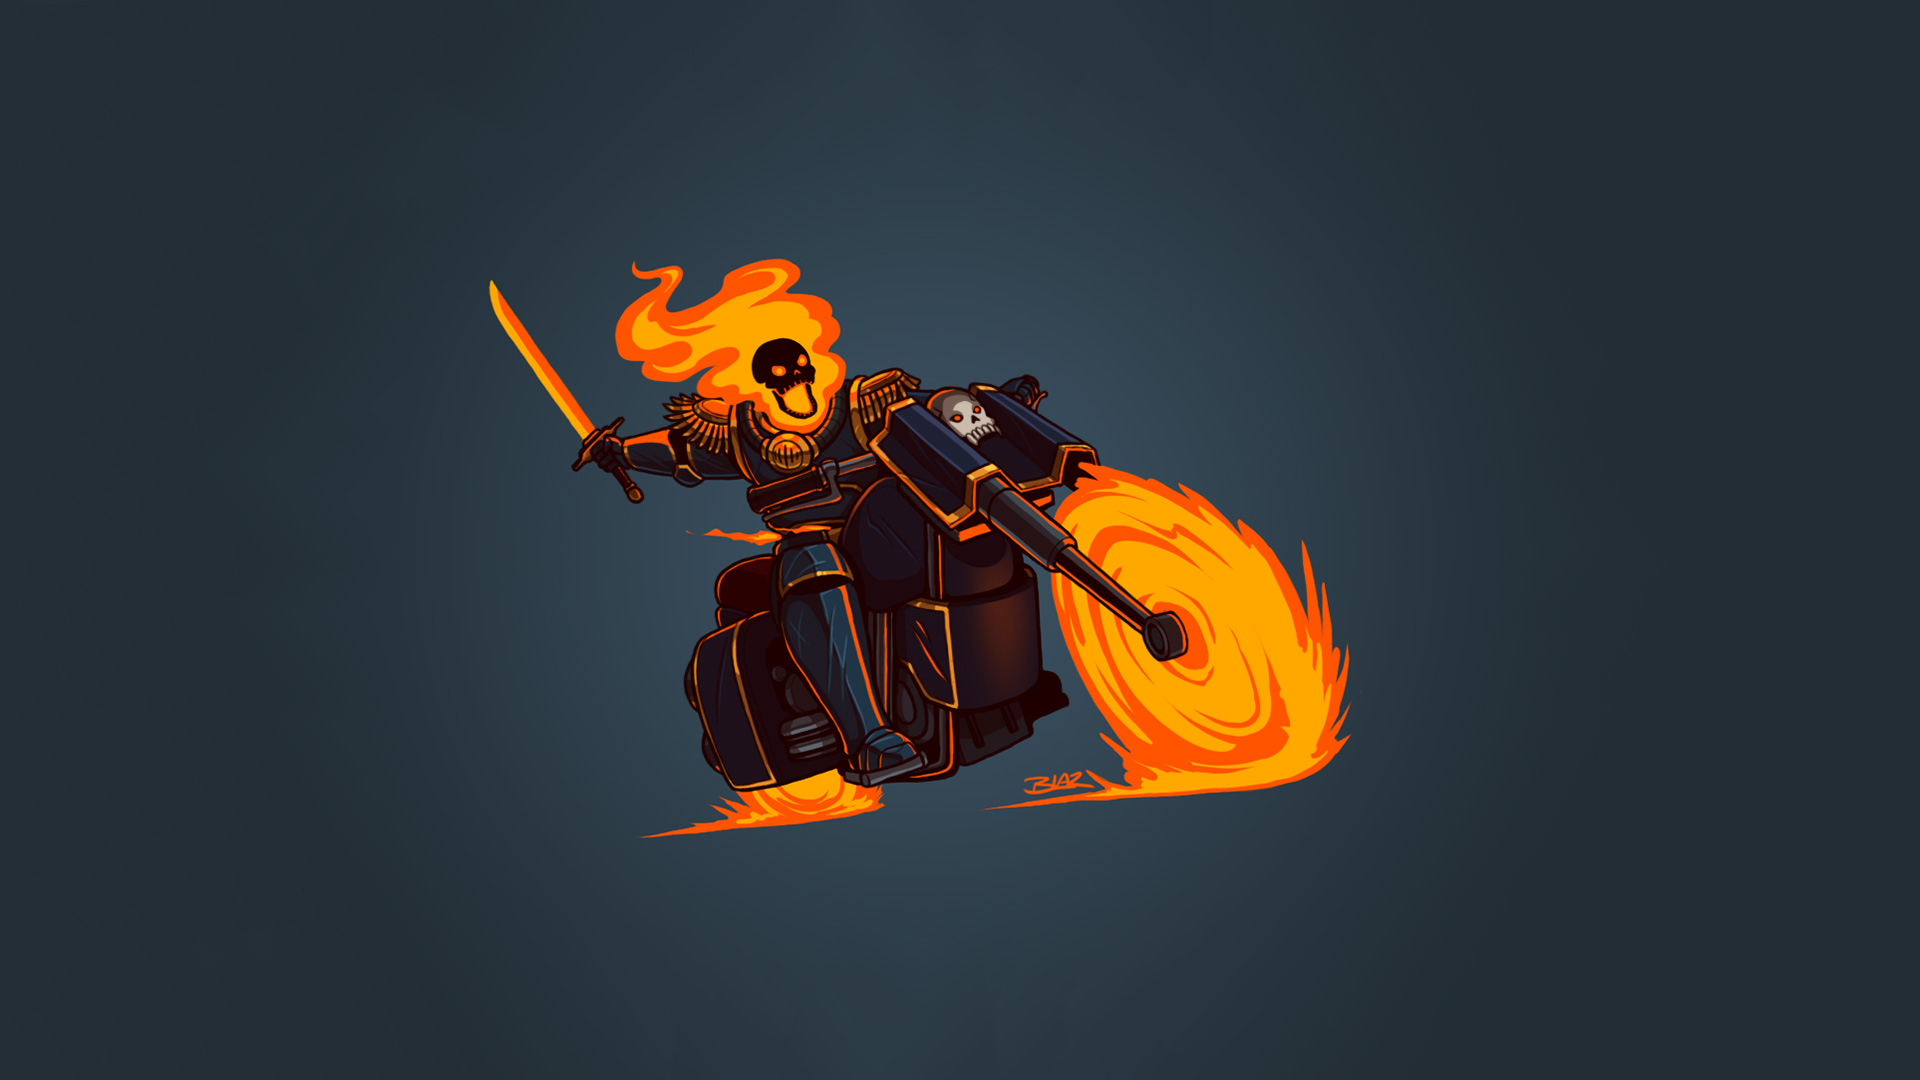 Cool N Cute Wallpapers For Mobile Ghost Rider Minimalism Hd Hd Artist 4k Wallpapers